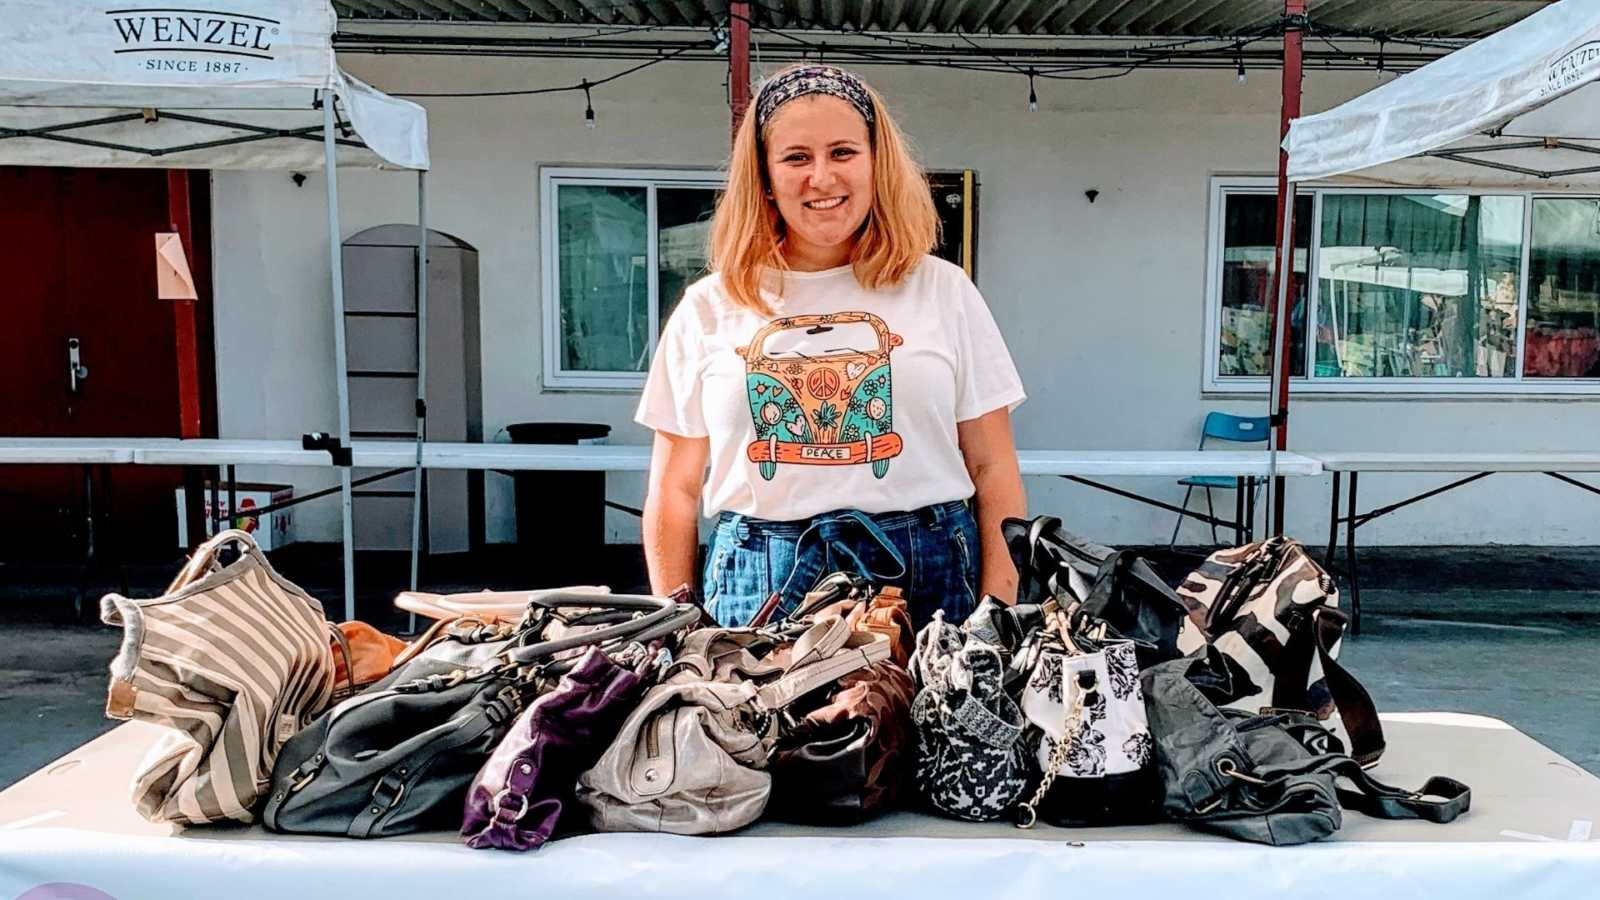 A young woman stands at a table covered in purses